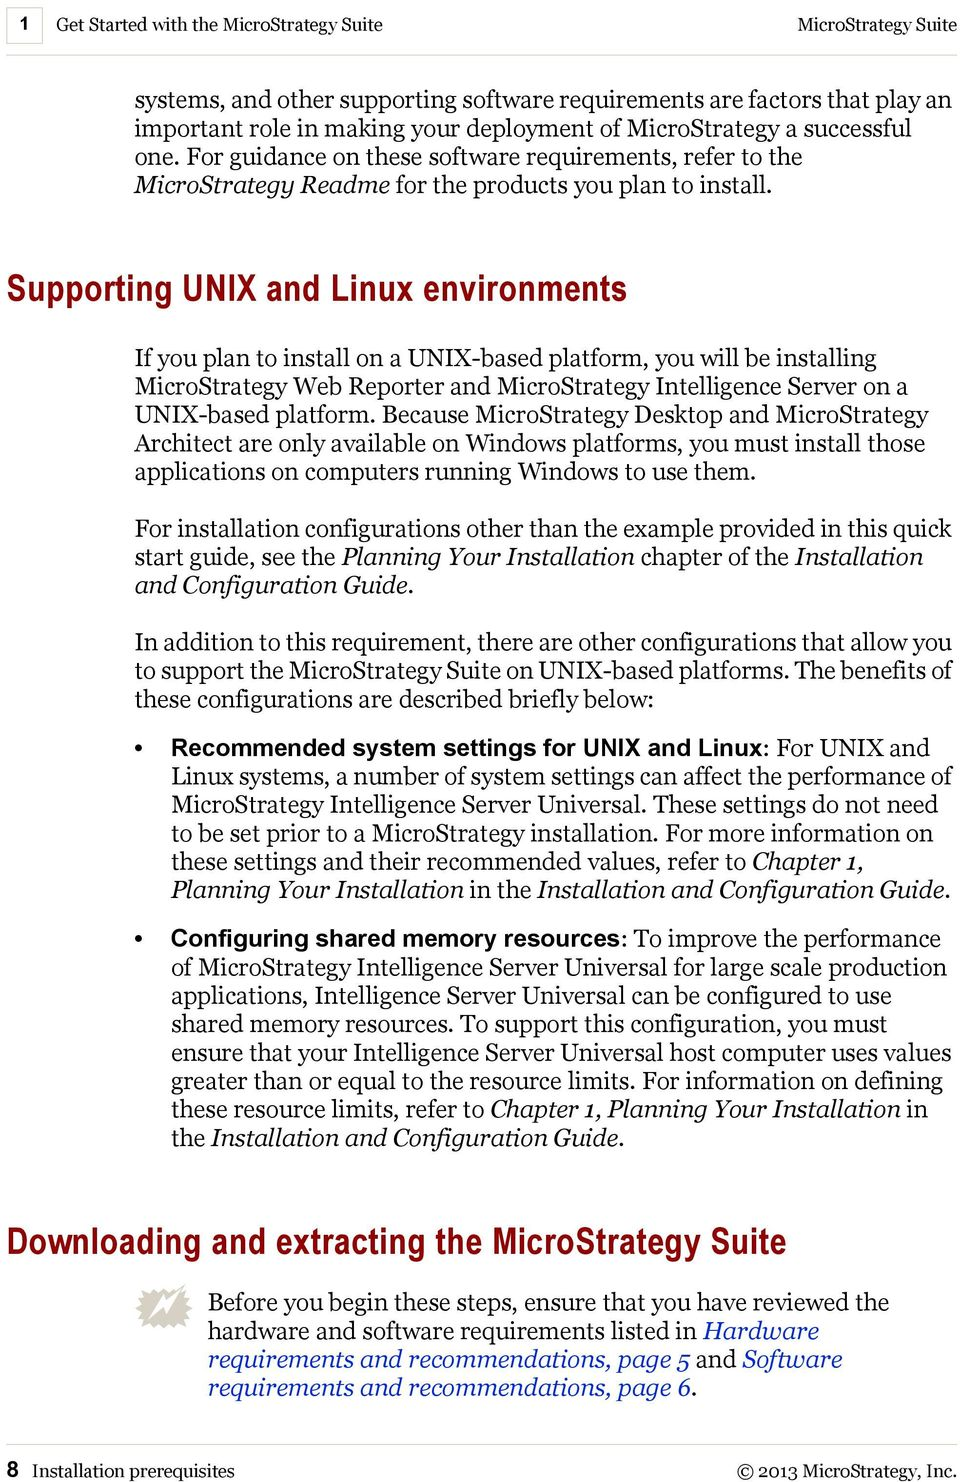 Supporting UNIX and Linux environments If you plan to install on a UNIX-based platform, you will be installing MicroStrategy Web Reporter and MicroStrategy Intelligence Server on a UNIX-based